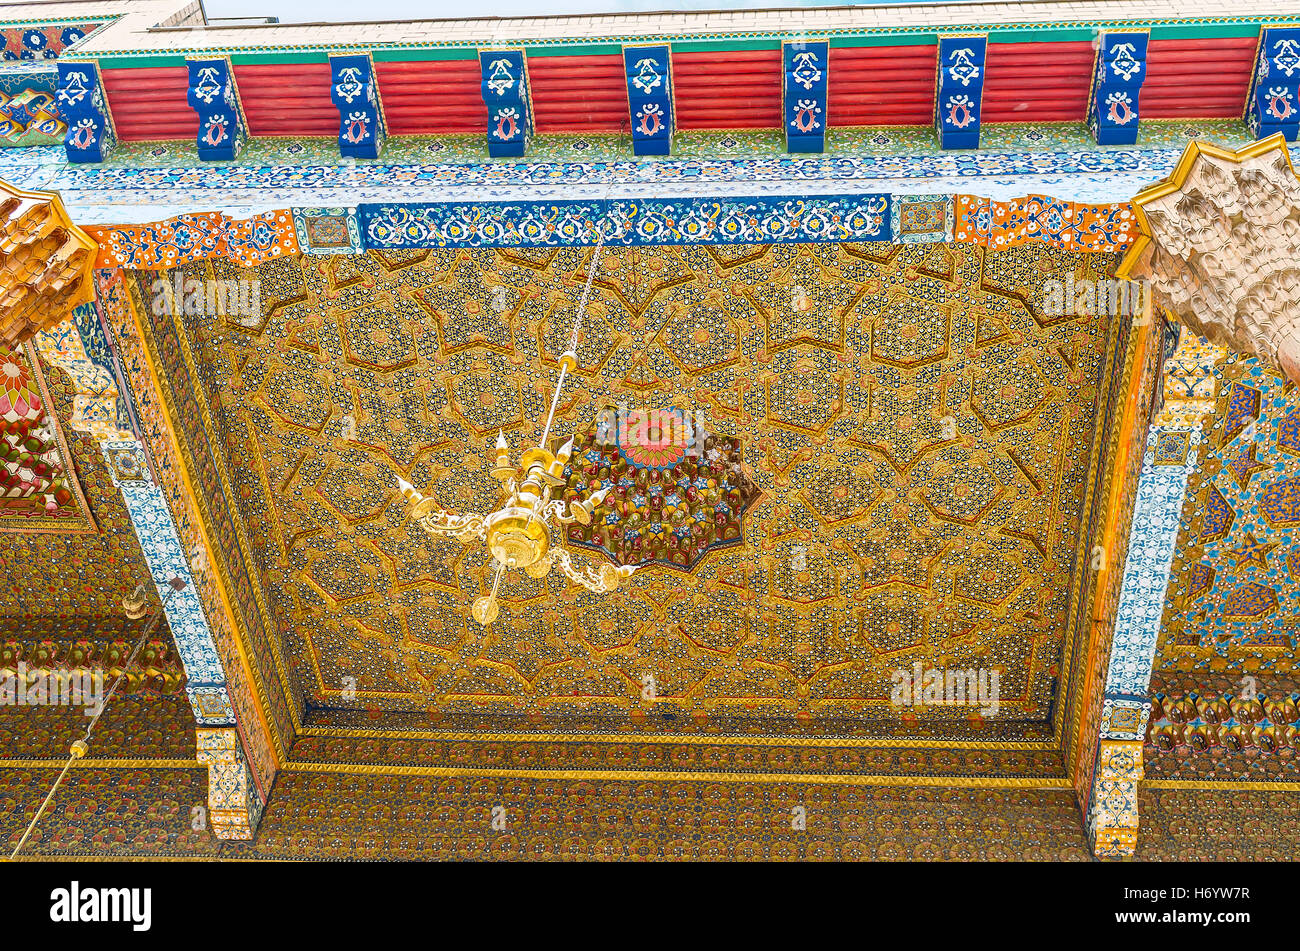 The carved stellar pattern is covered with colorful floral and geometric ornaments in Sheikh Nakshbund Mausoleum - Stock Image